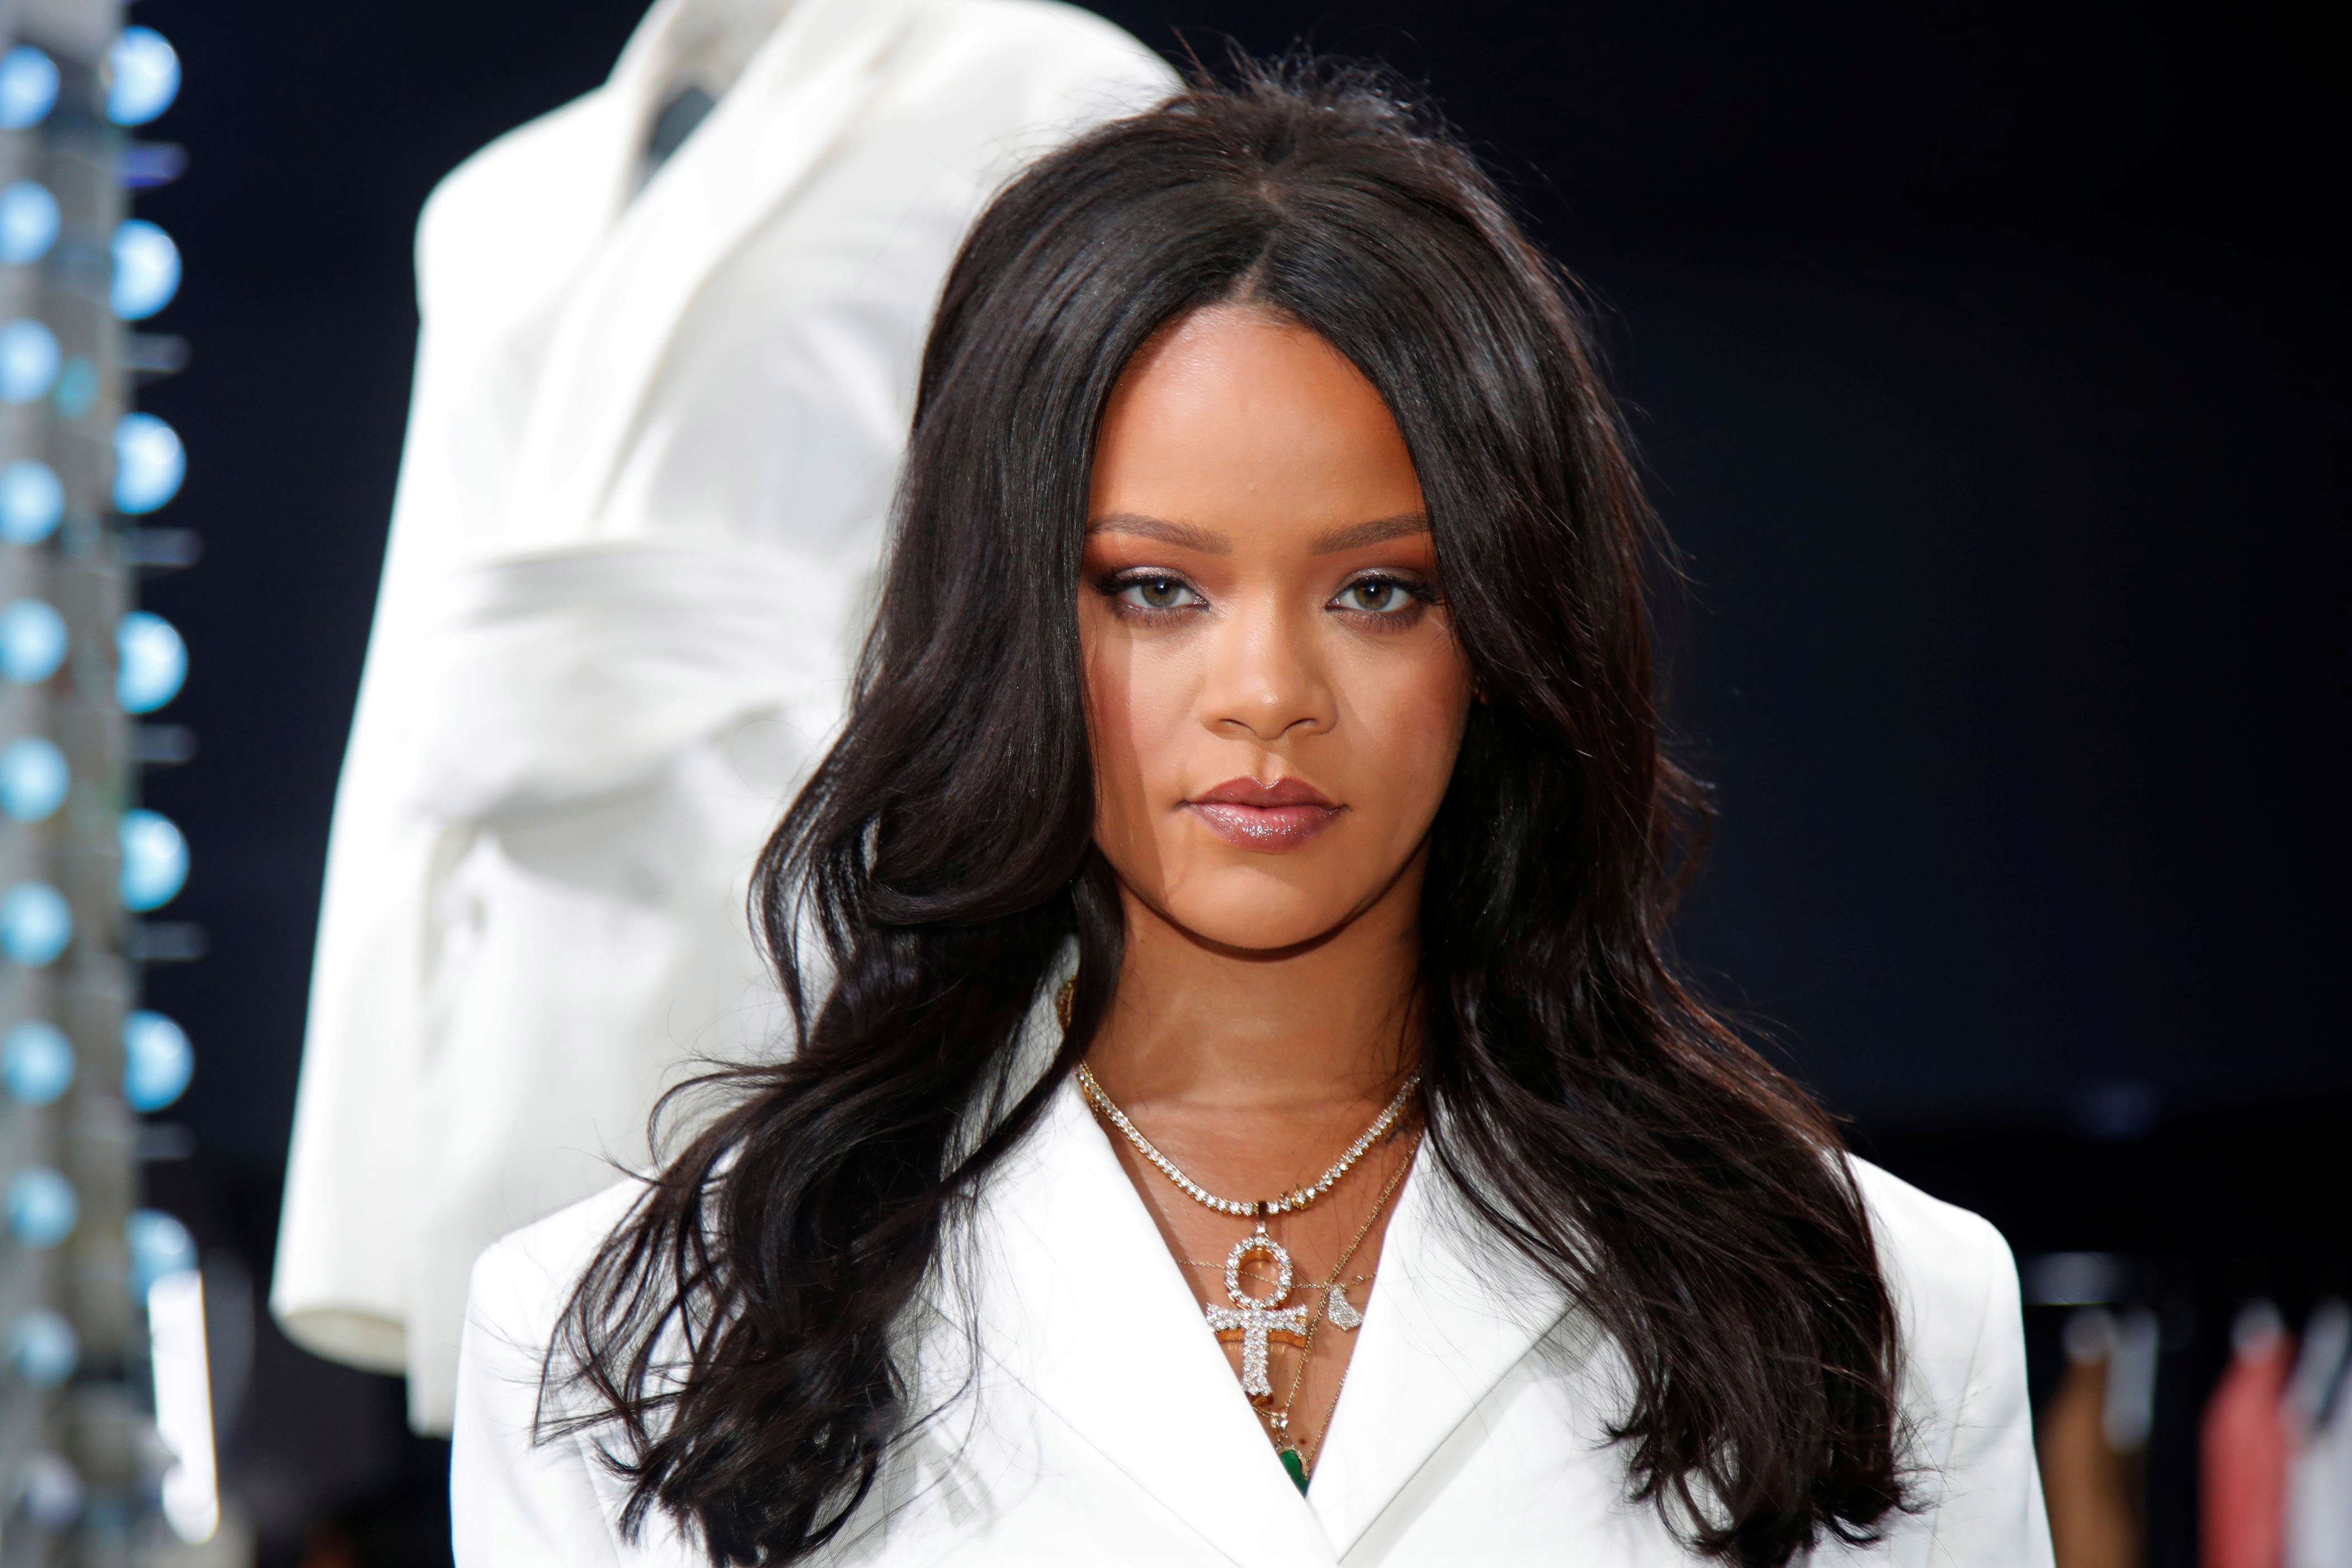 Slide 9 of 11: Pop superstar Rihanna poses in a pop-up store to present her first collection with LVMH for the new label, Fenty, which includes ready-to-wear and accessories, such as shoes, sunglasses and jewellery, Paris, France May 22, 2019. Picture taken May 22, 2019.   REUTERS/Charles Platiau